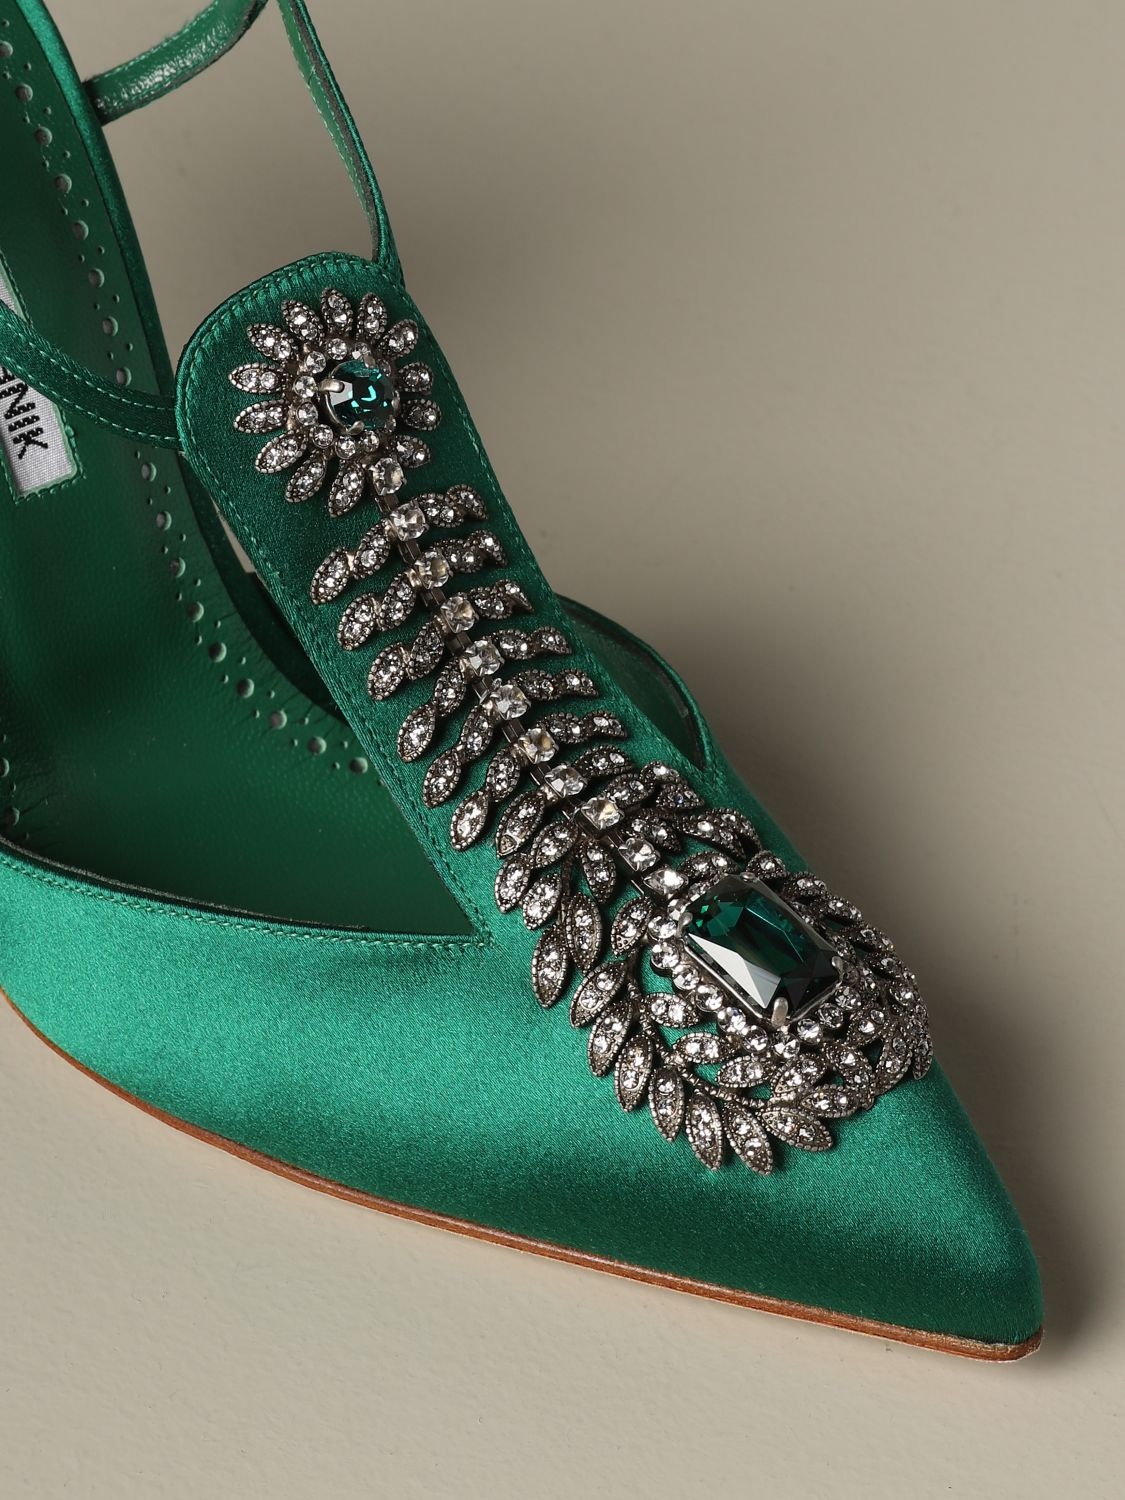 Pumps Manolo Blahnik: Shoes women Manolo Blahnik emerald 3